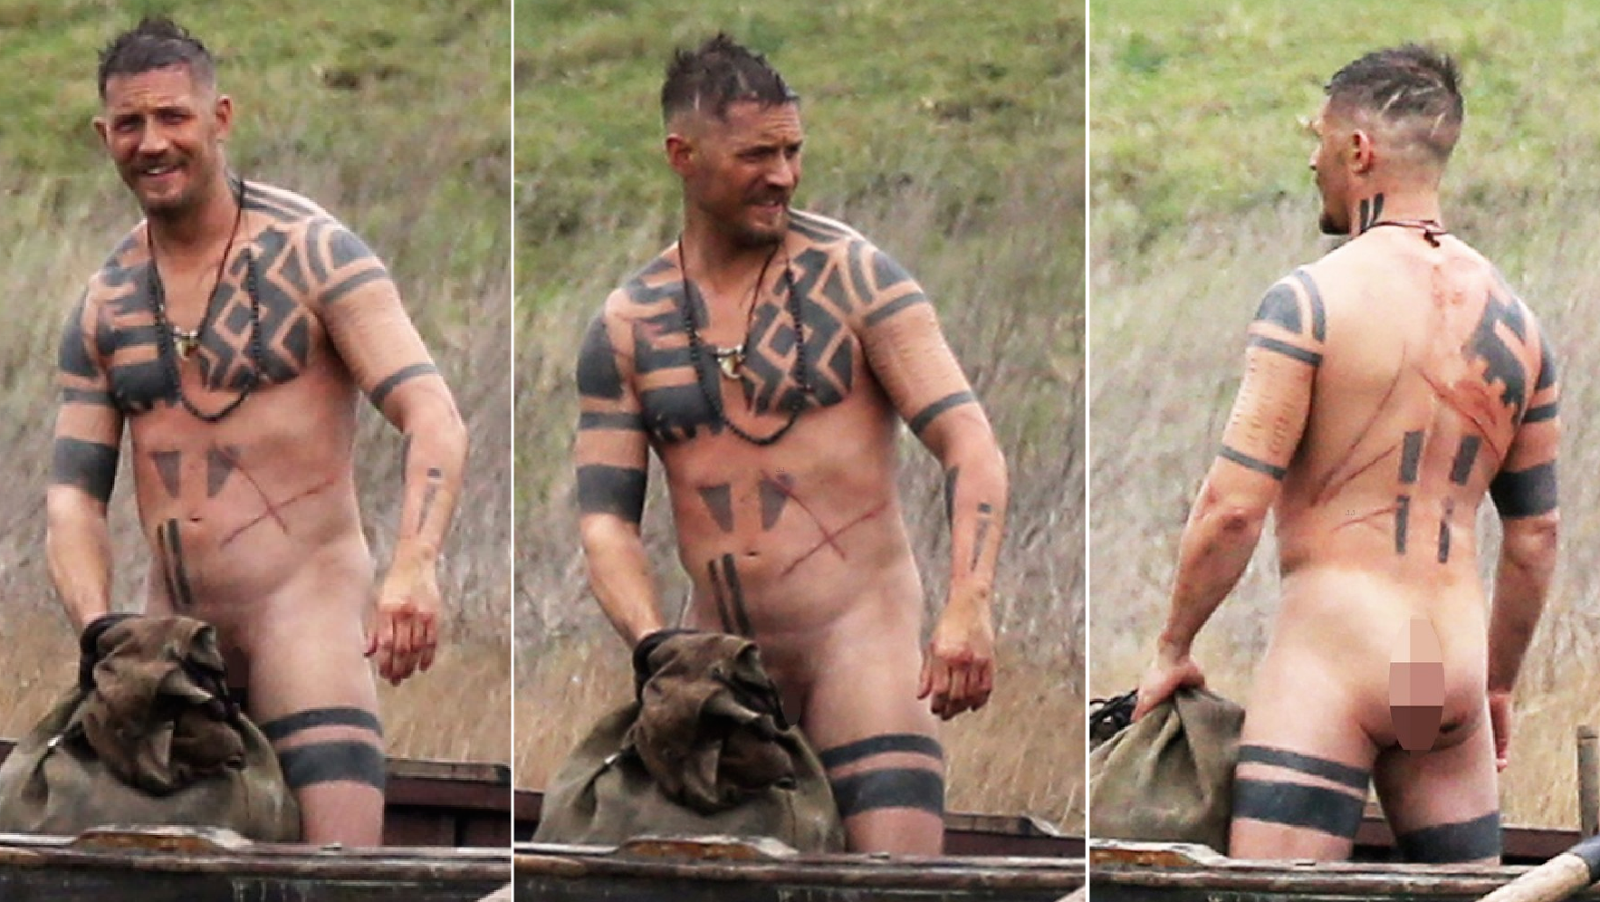 Tom hardy strips naked on the set of period drama taboo